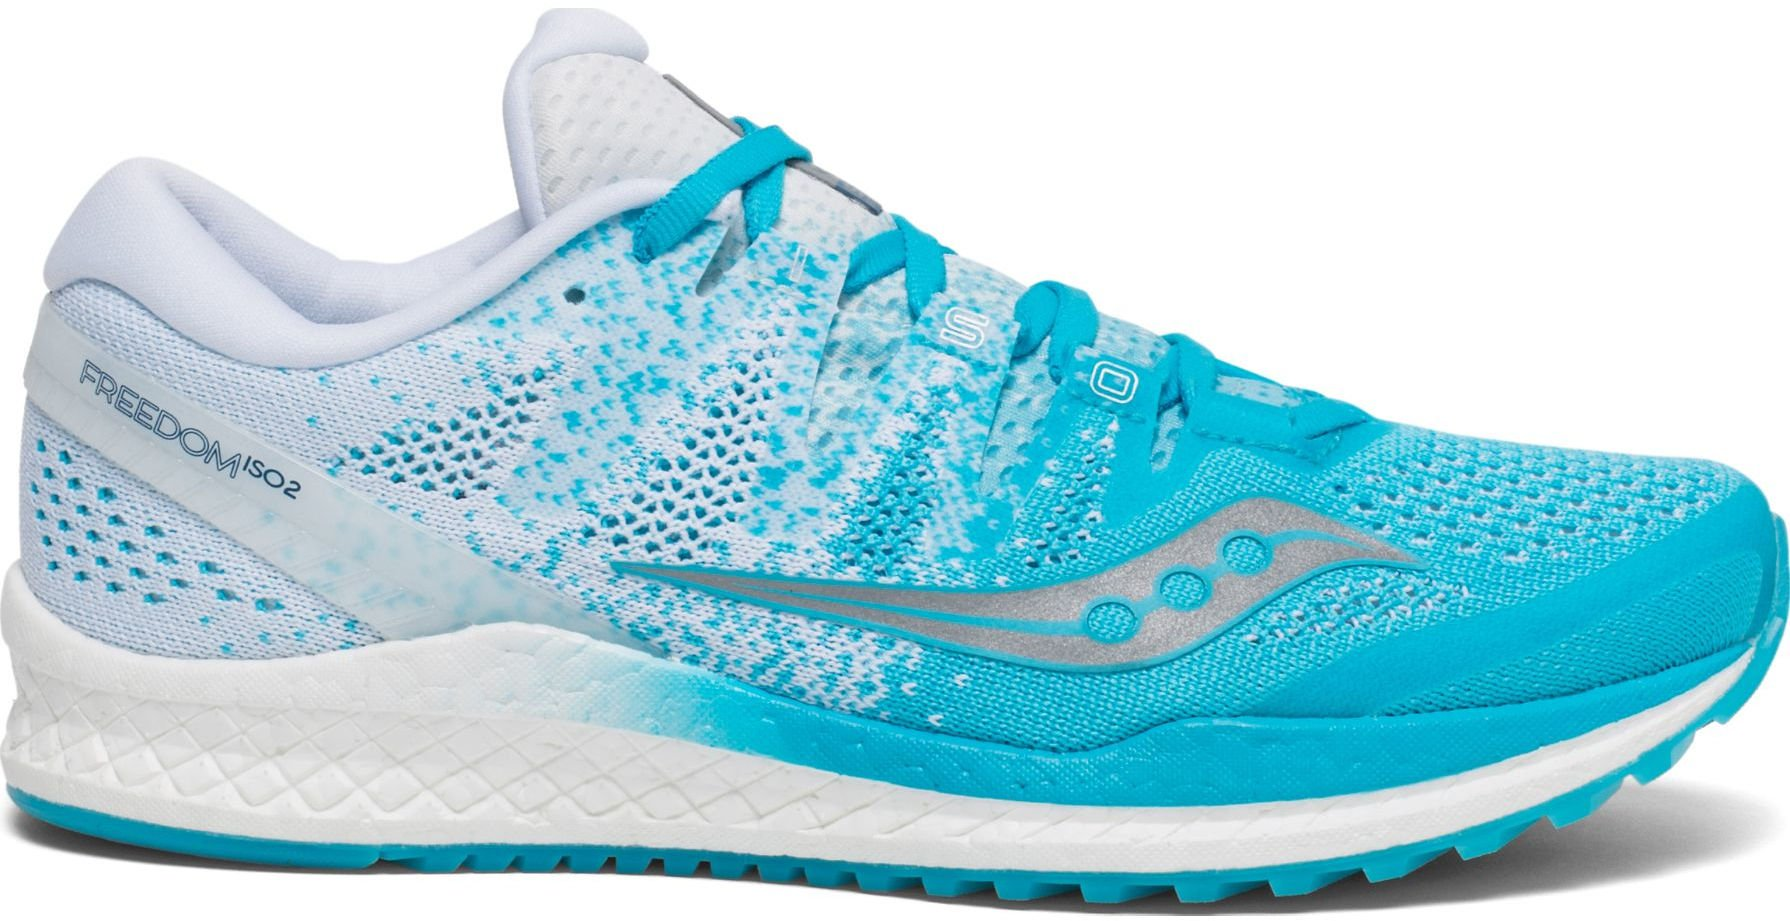 Zapatillas de running Saucony SAUCONY FREEDOM ISO 2 s10440 36 Talla 37,5 EU | 4,5 UK | 6,5 US | 23 CM